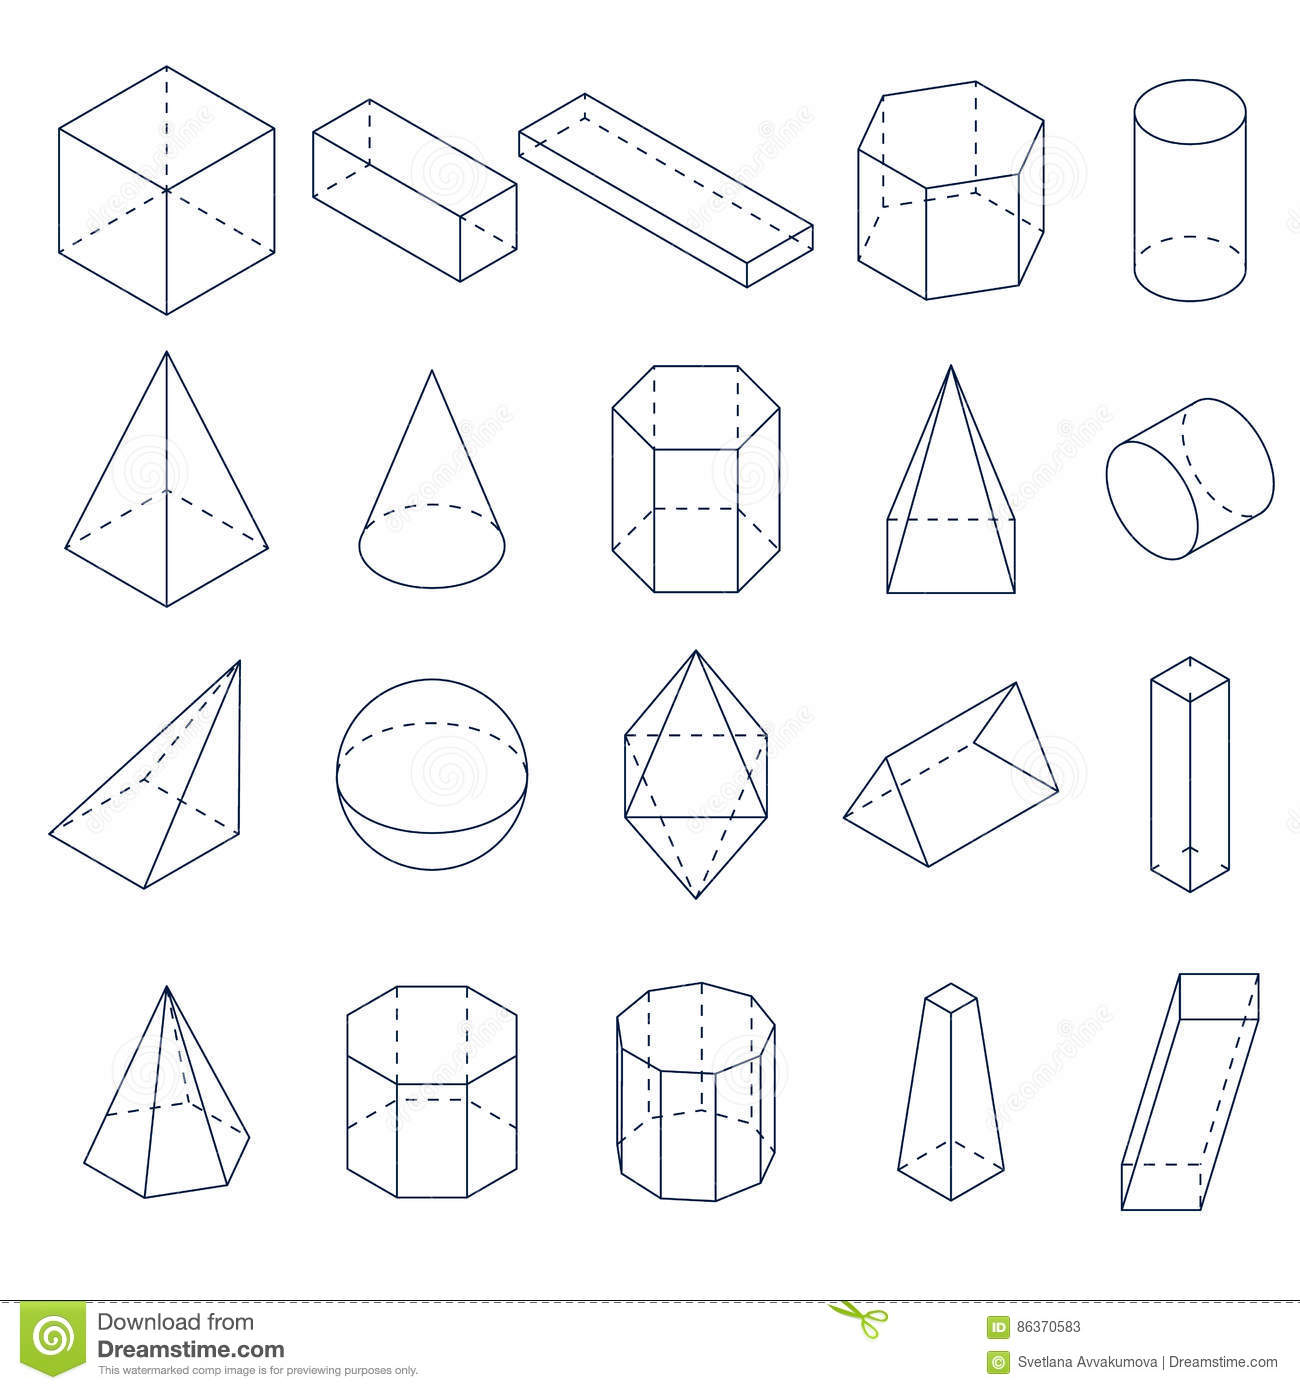 A Set Of 3D Geometric Shapes  Isometric Views  Stock Vector